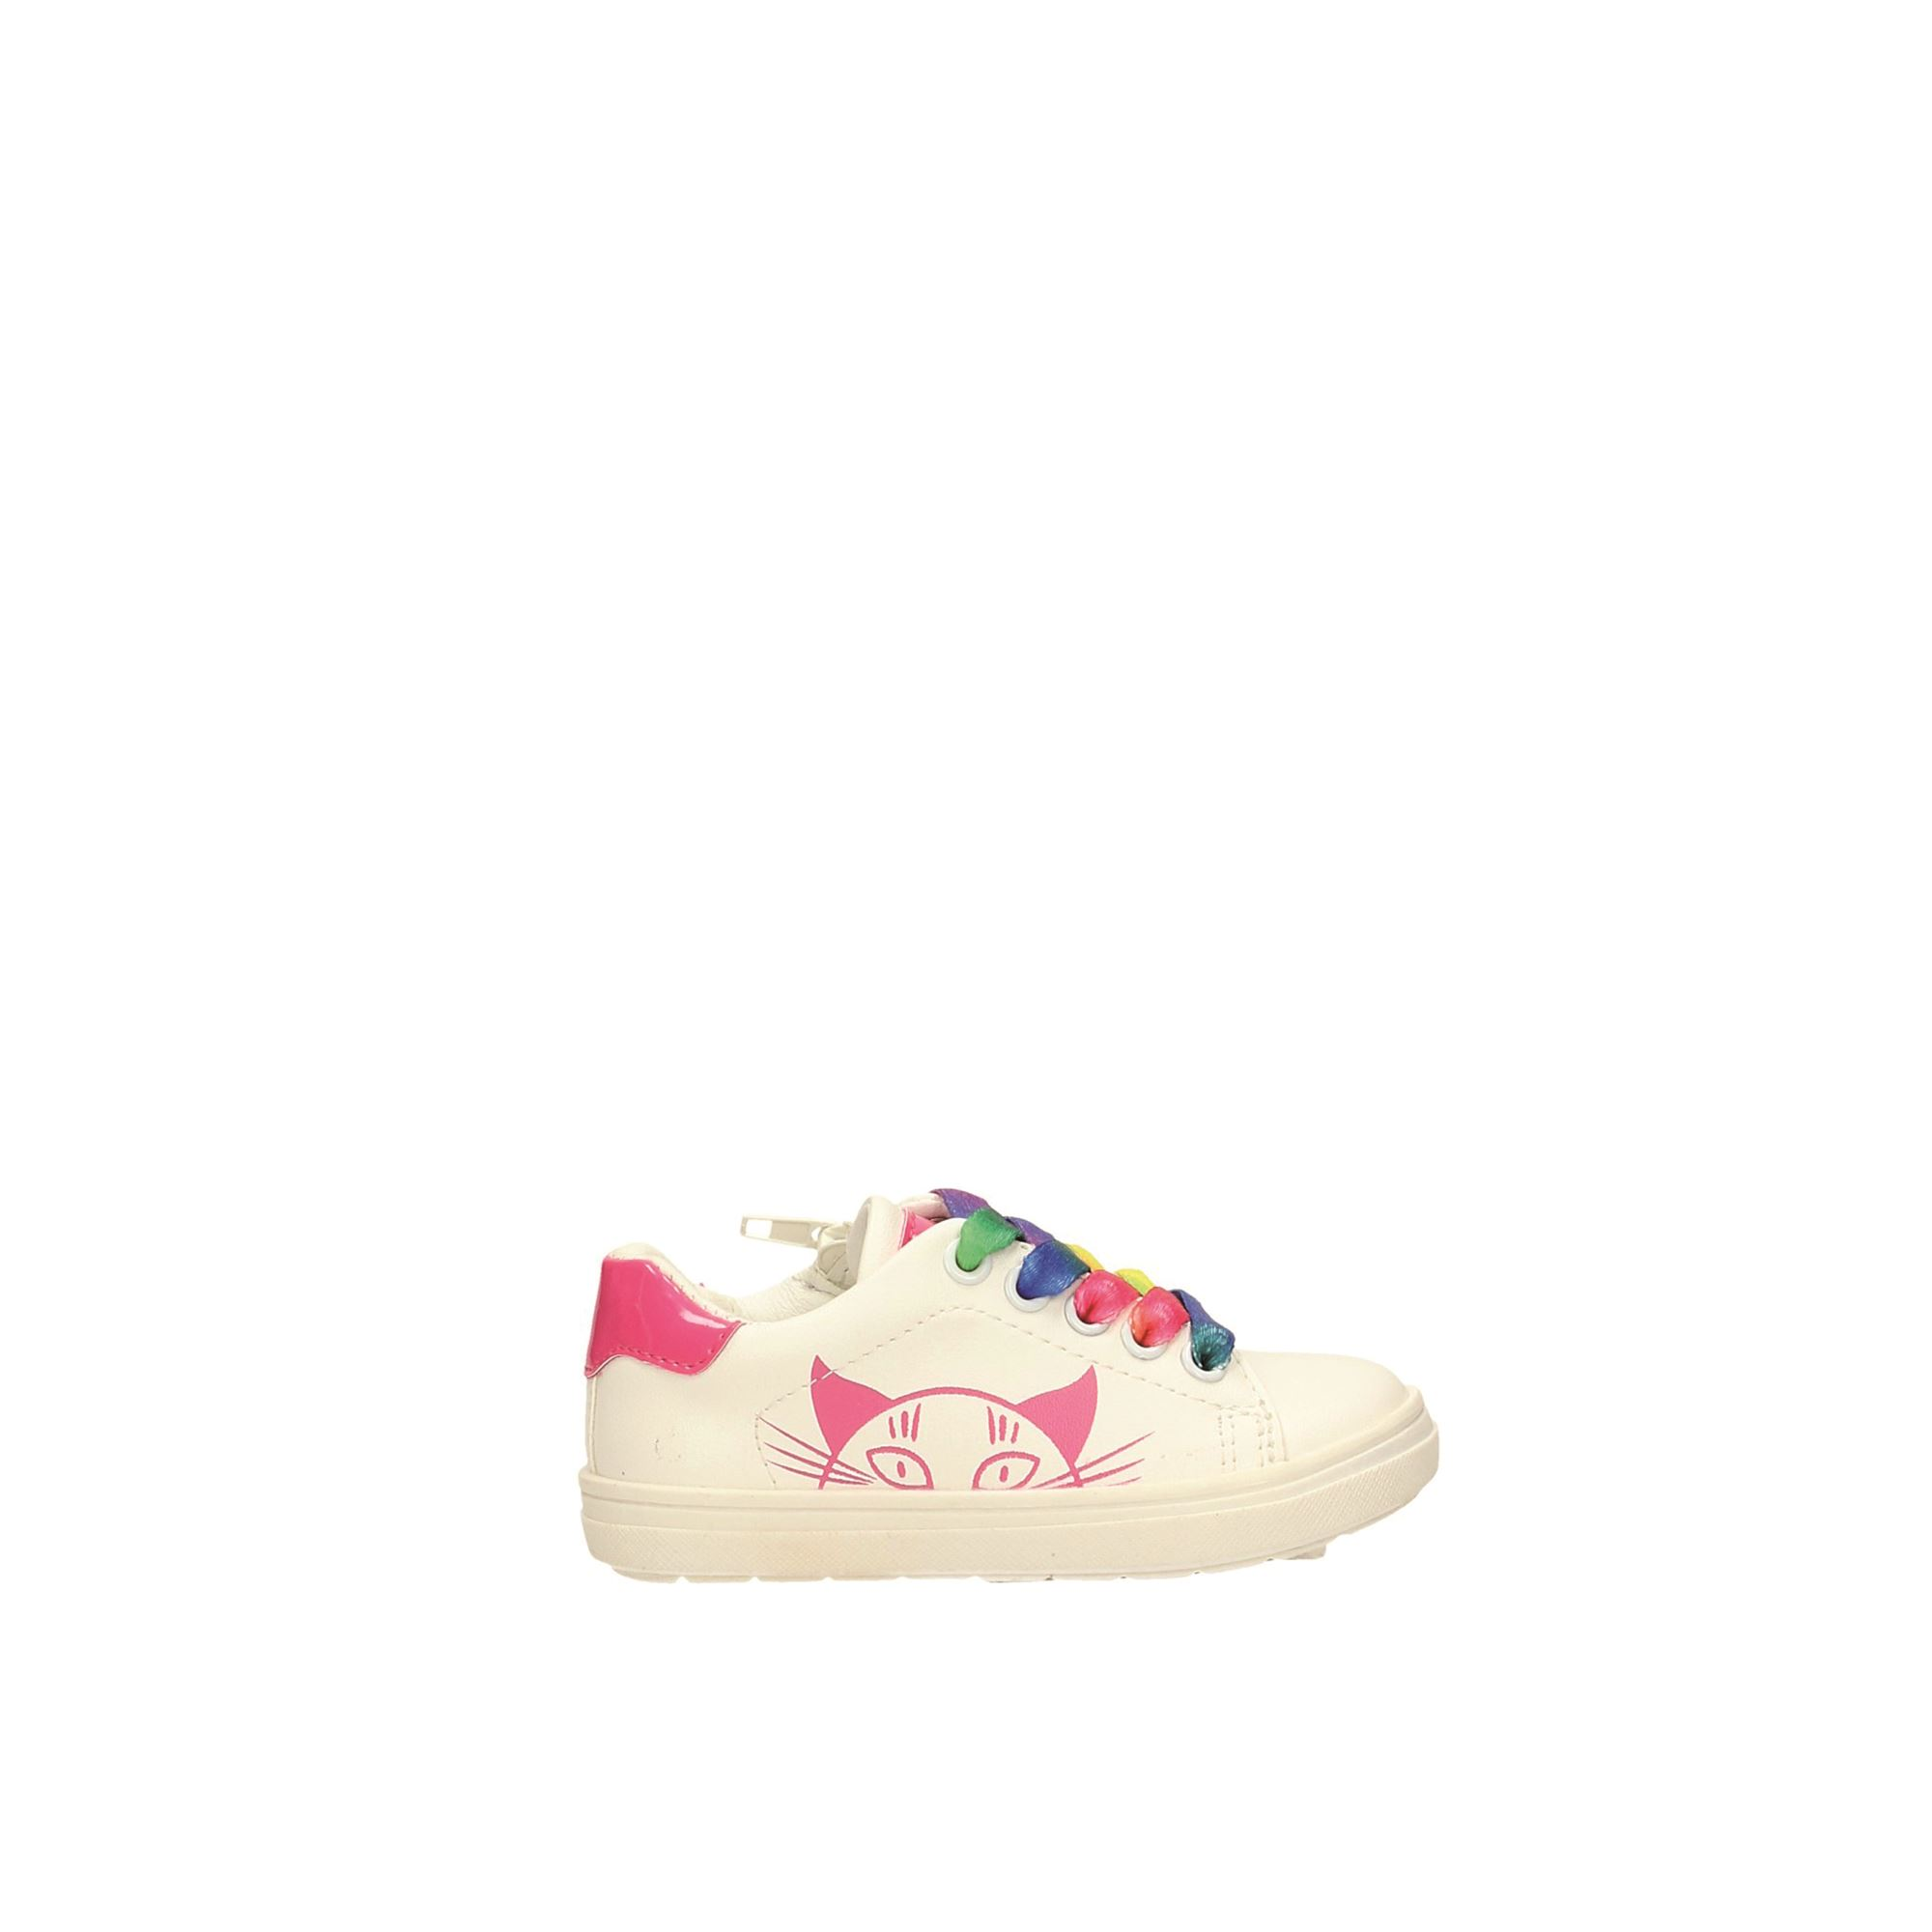 Tata Italia Shoes Junior Sneakers White 174-201